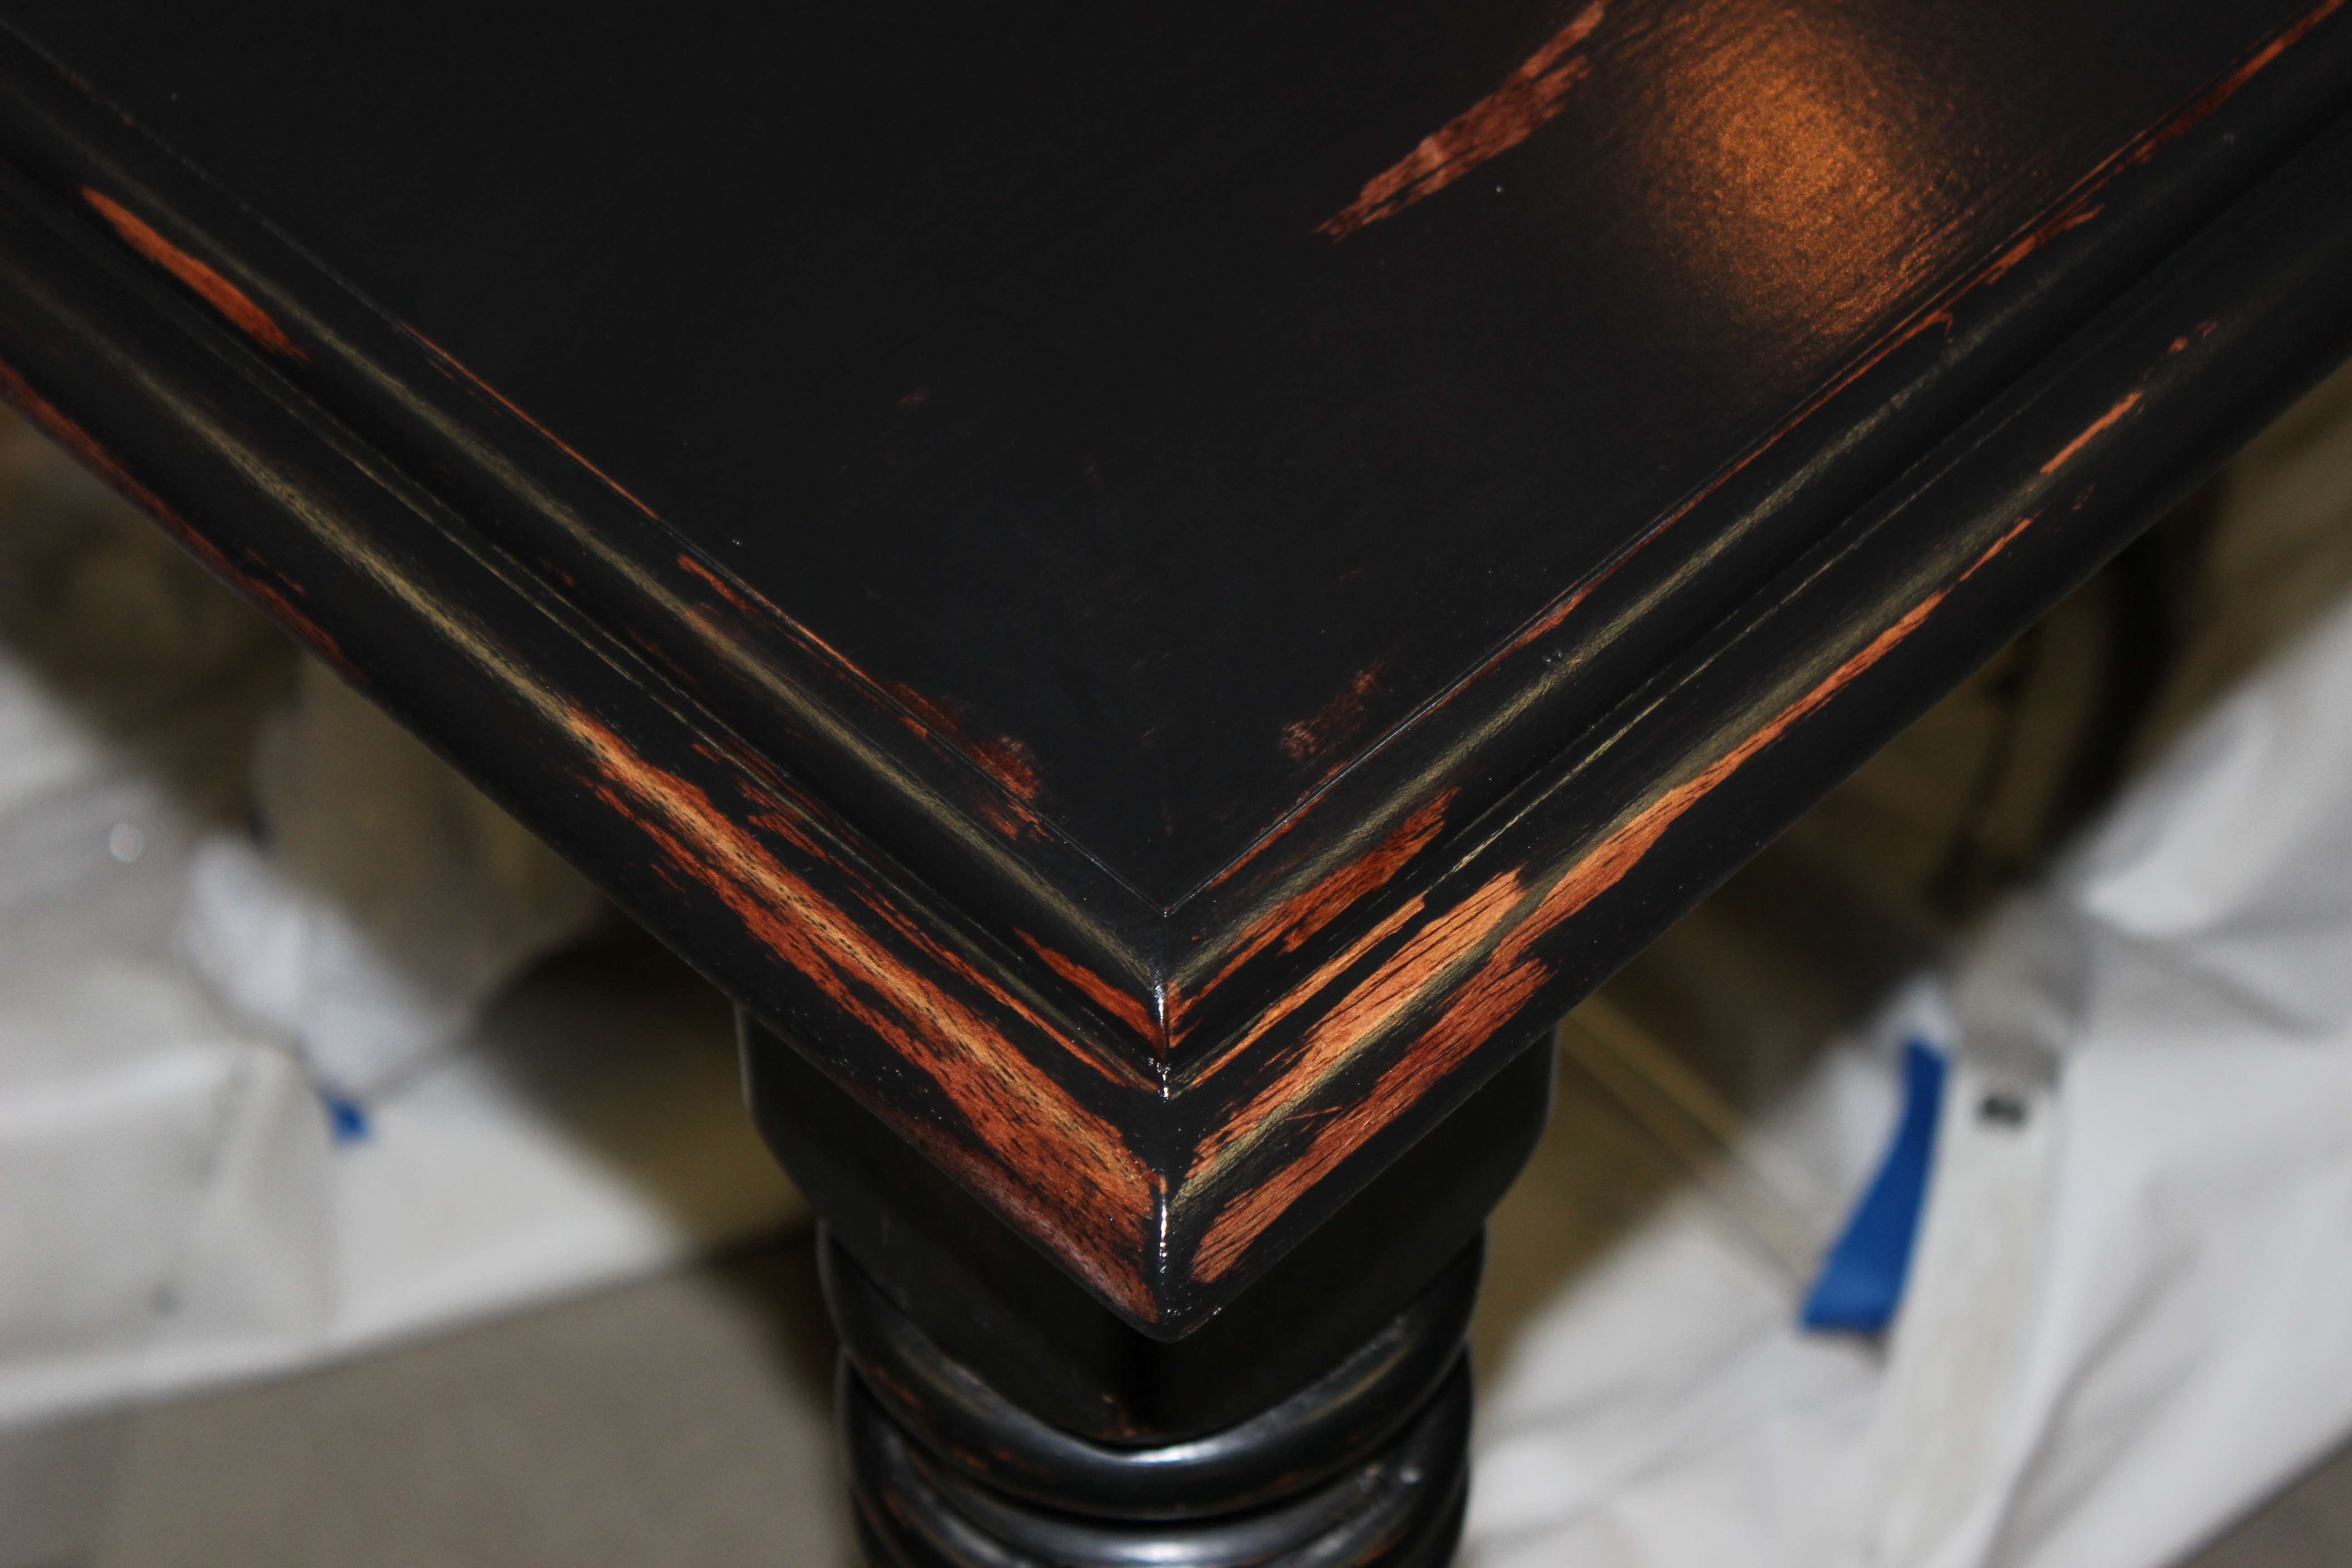 Delicieux Distressed Finish, Distressed Furniture, Refinishing Furniture, Table Top  Refurbish, Table Top Restoration